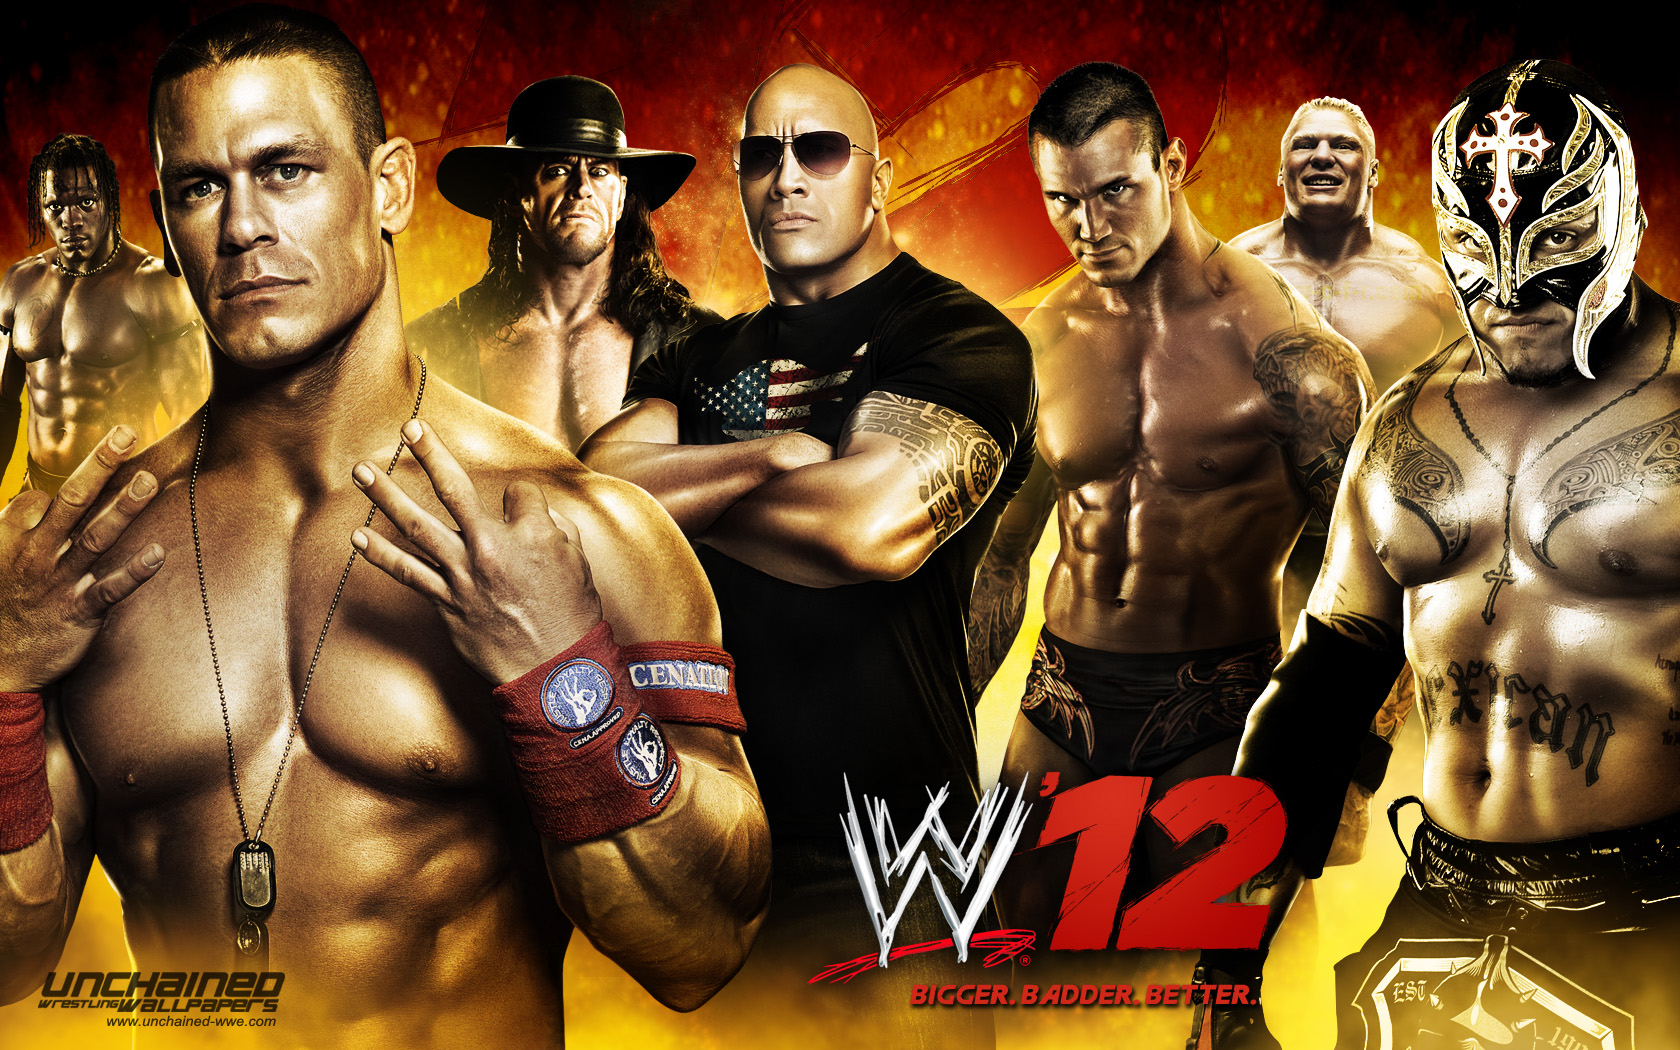 WWE images WWE 12 wallpaper photos 31658858 1680x1050